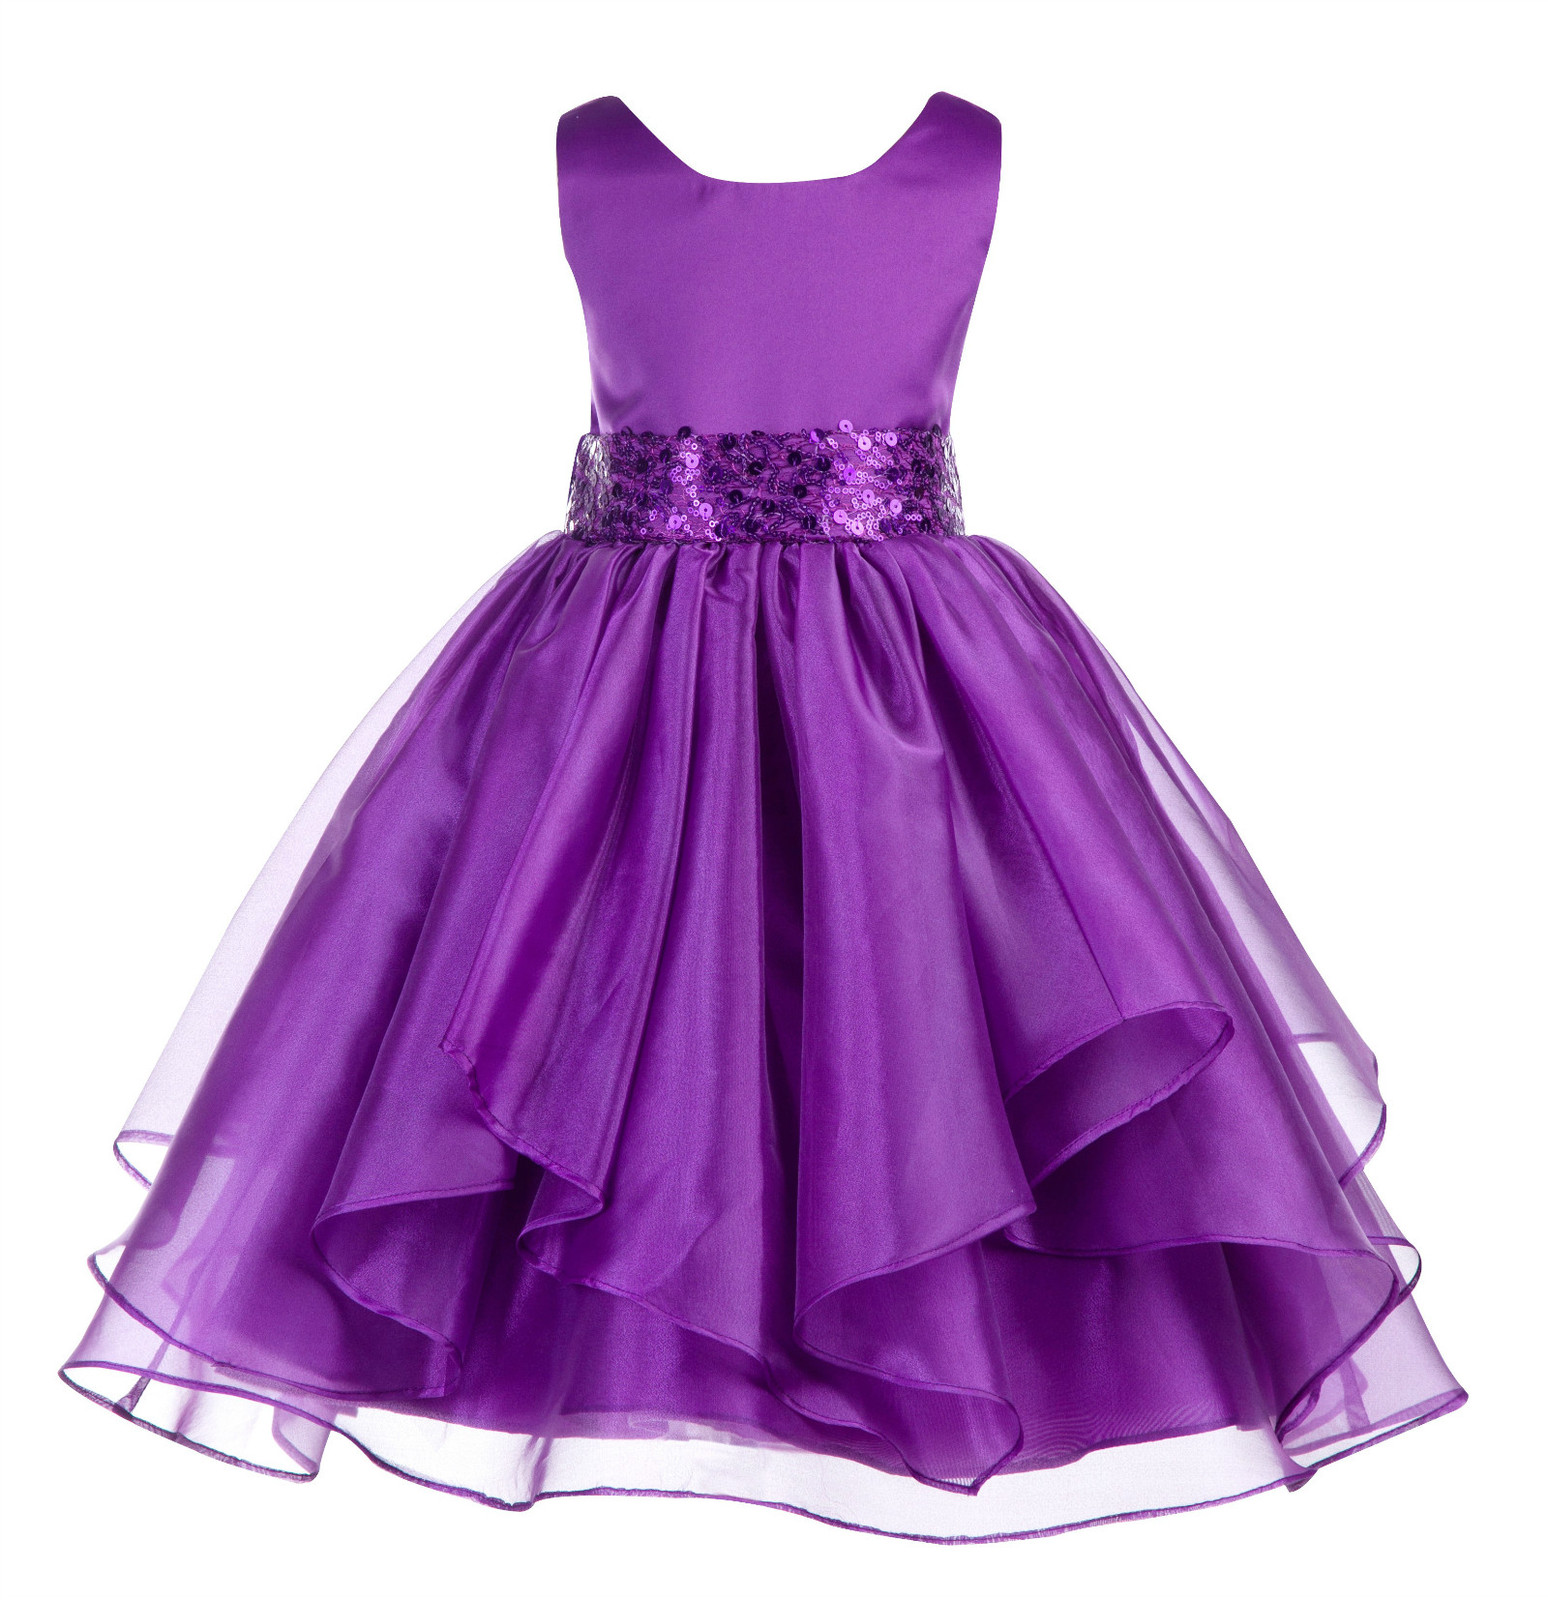 Purple Quinceanera Dresses in every shade and design are available at our website Quinceanera Girl. You can choose from an extensive collection of purple gowns in various designs like A-lines, ruffled, pleated and halter at our website and what's more, at some of the most affordable prices!